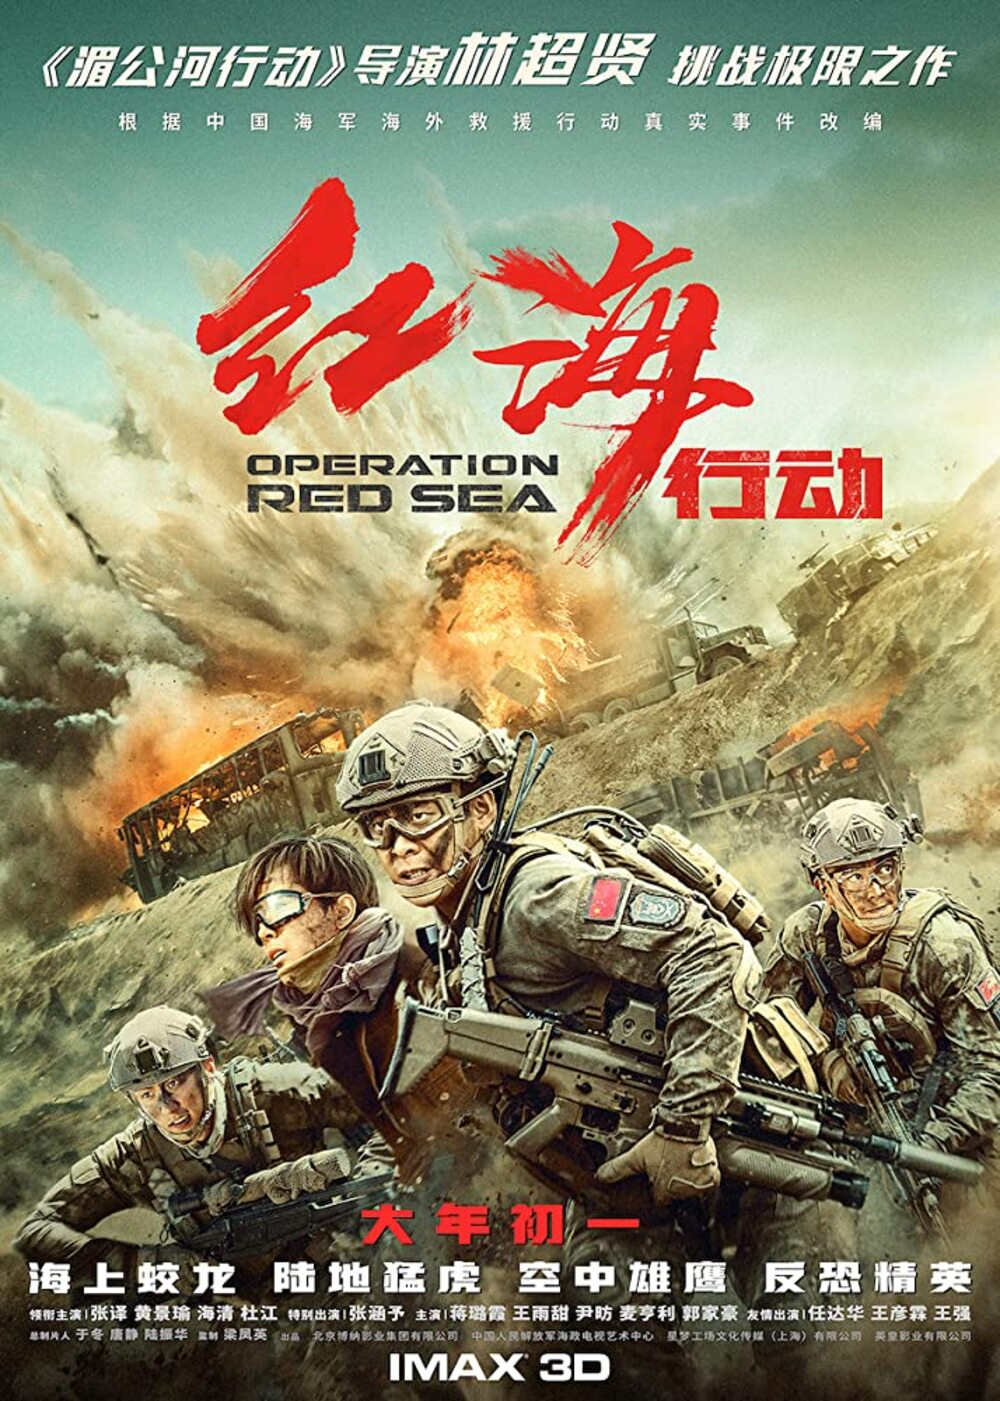 Hong Hai Xing Dong Operation Red Sea 2018 One Of The Greatest Action Movies Ever Made 9 10 18 06 20 Sebastian Kluth